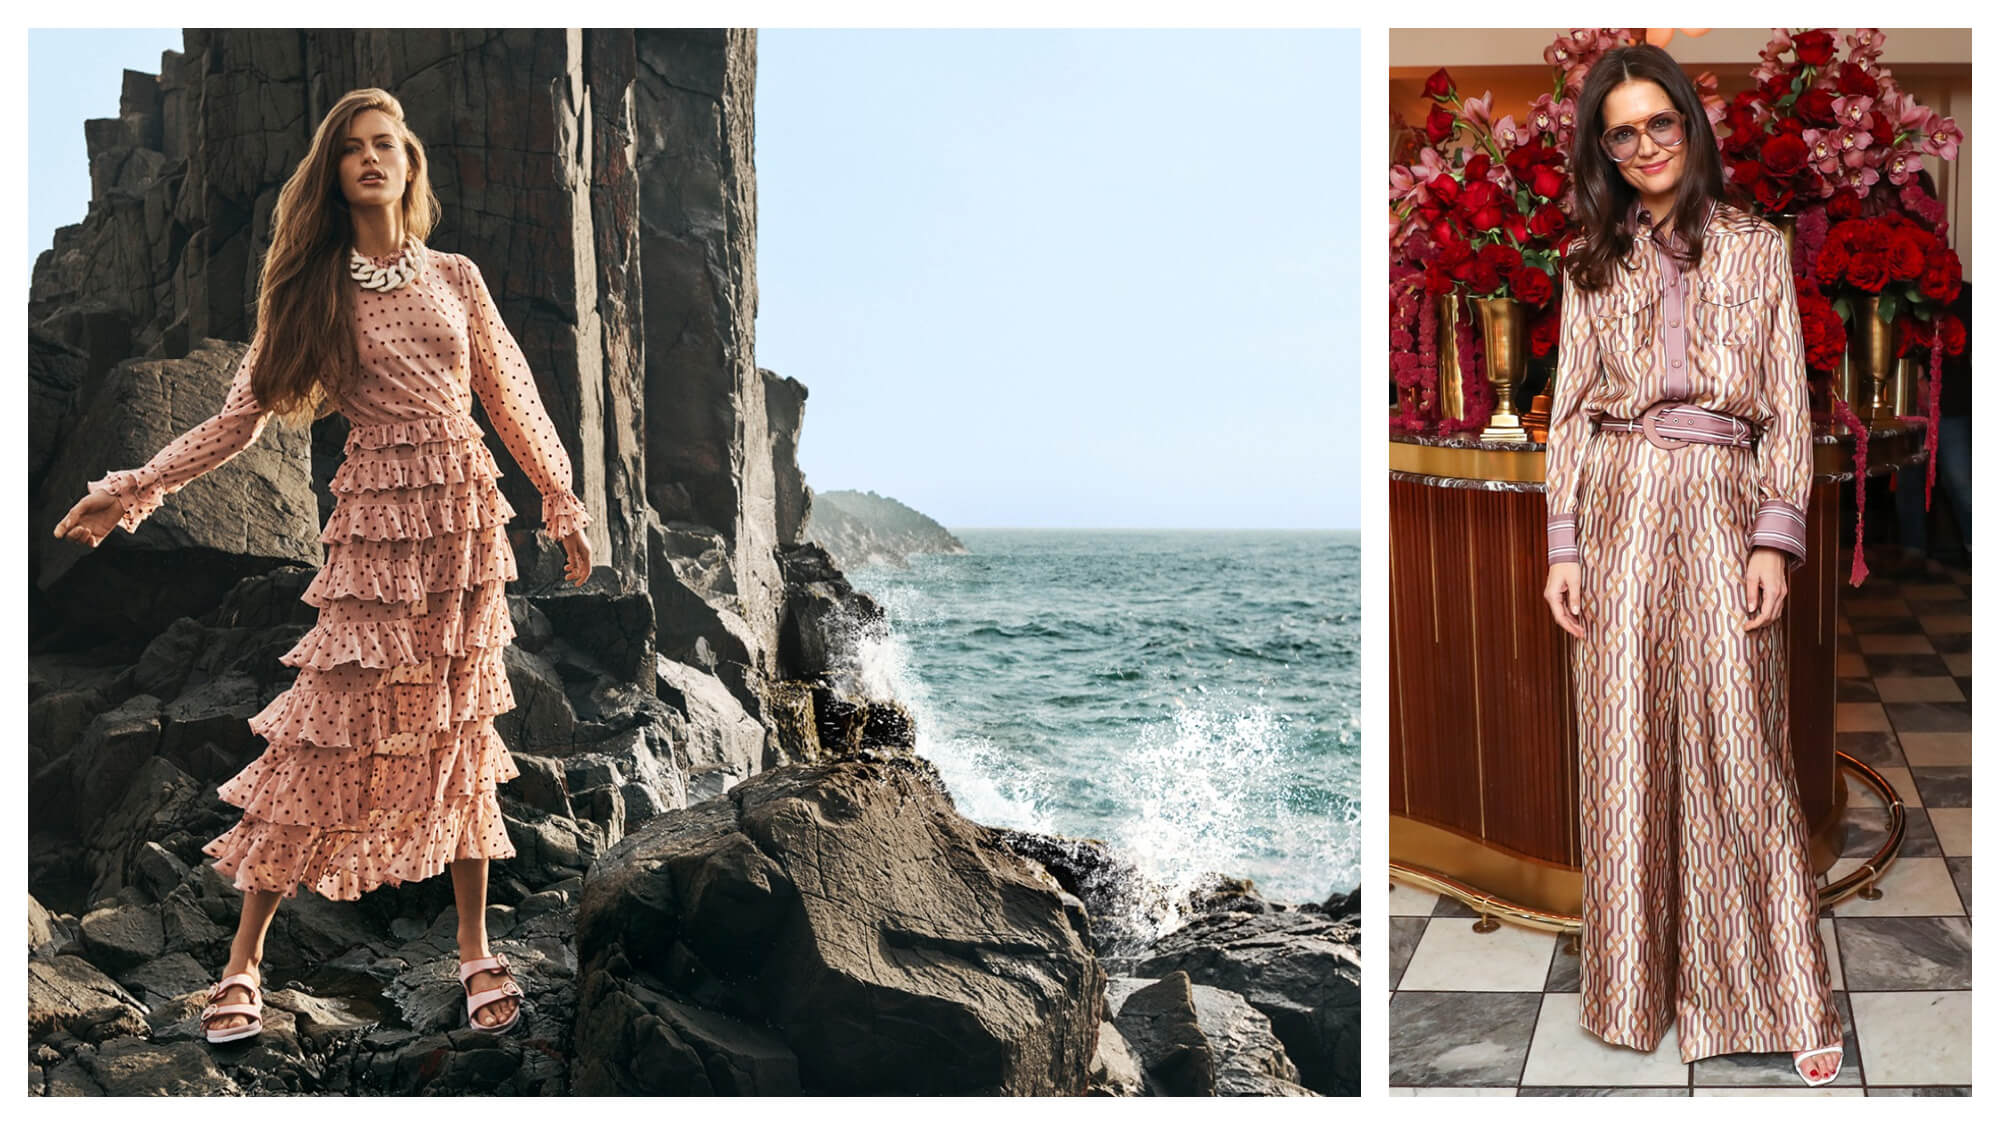 Left: a woman on rocks near the ocean wearing a long, frilly pale pink dress with black polka dots. Right: Katie Holmes in front of a bar covered with vases of flowers wearing a patterned shirt and matching pants.